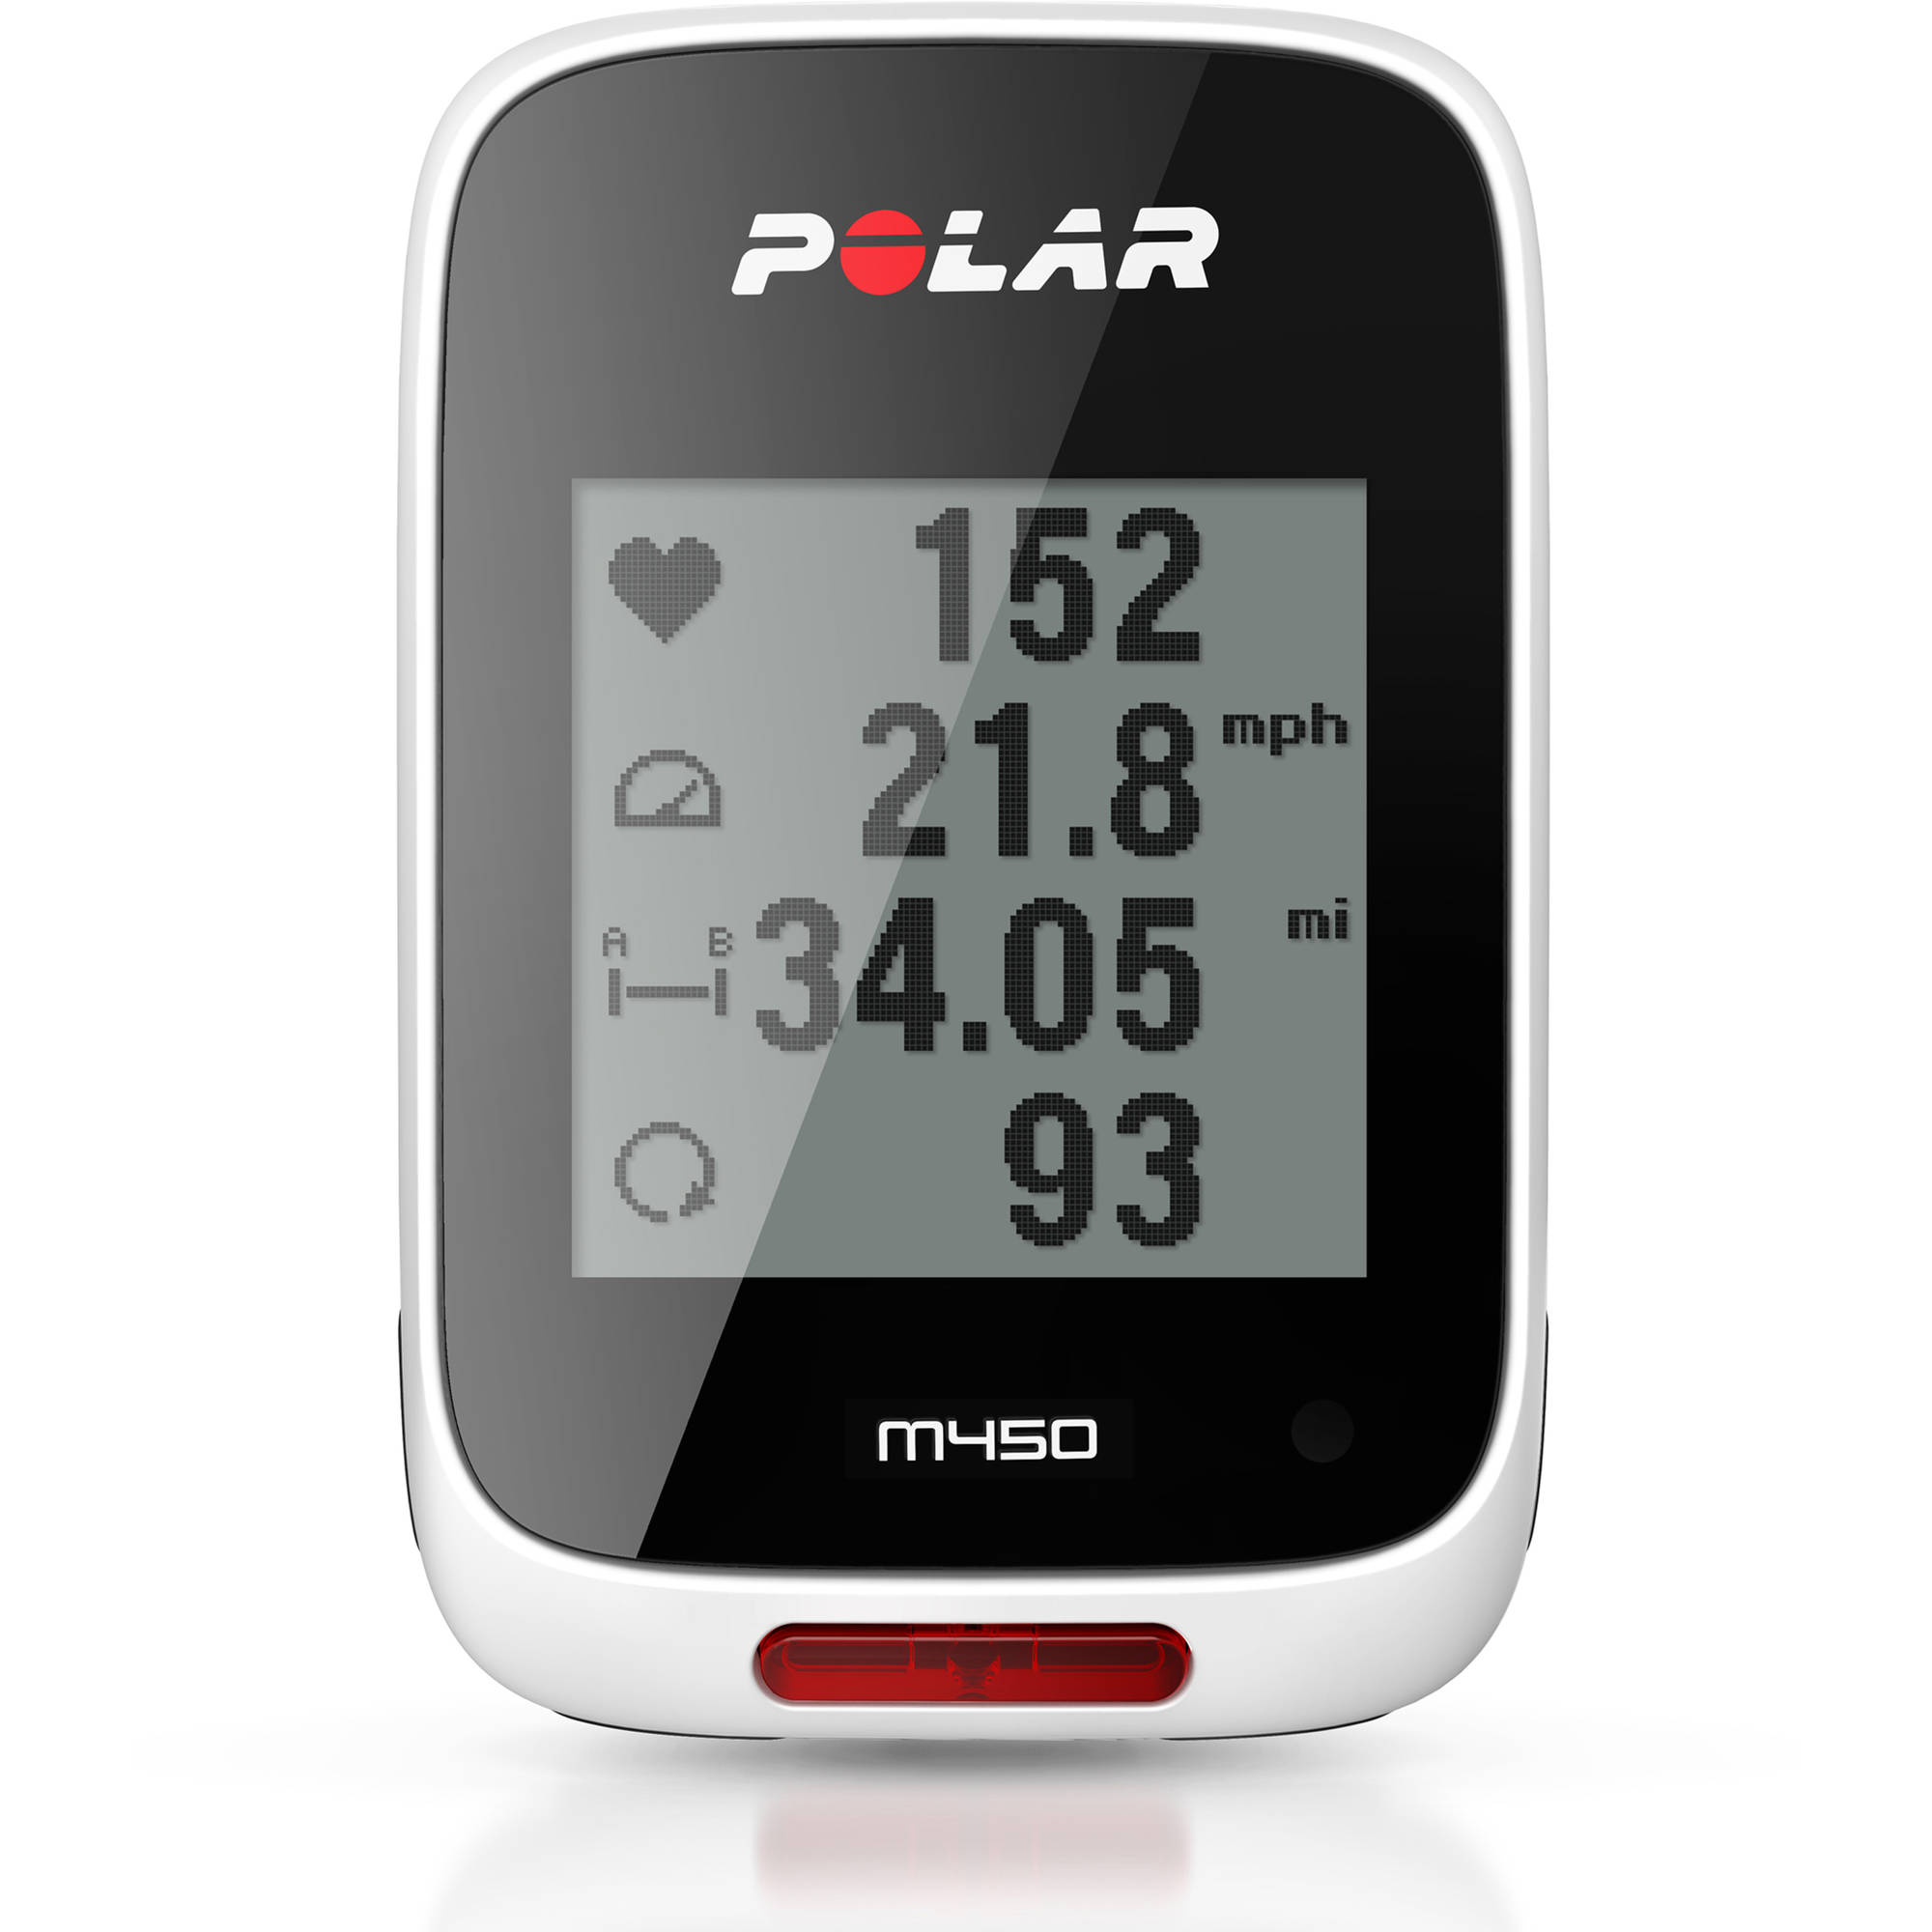 Polar M450 Cycling Computer with Heart Rate